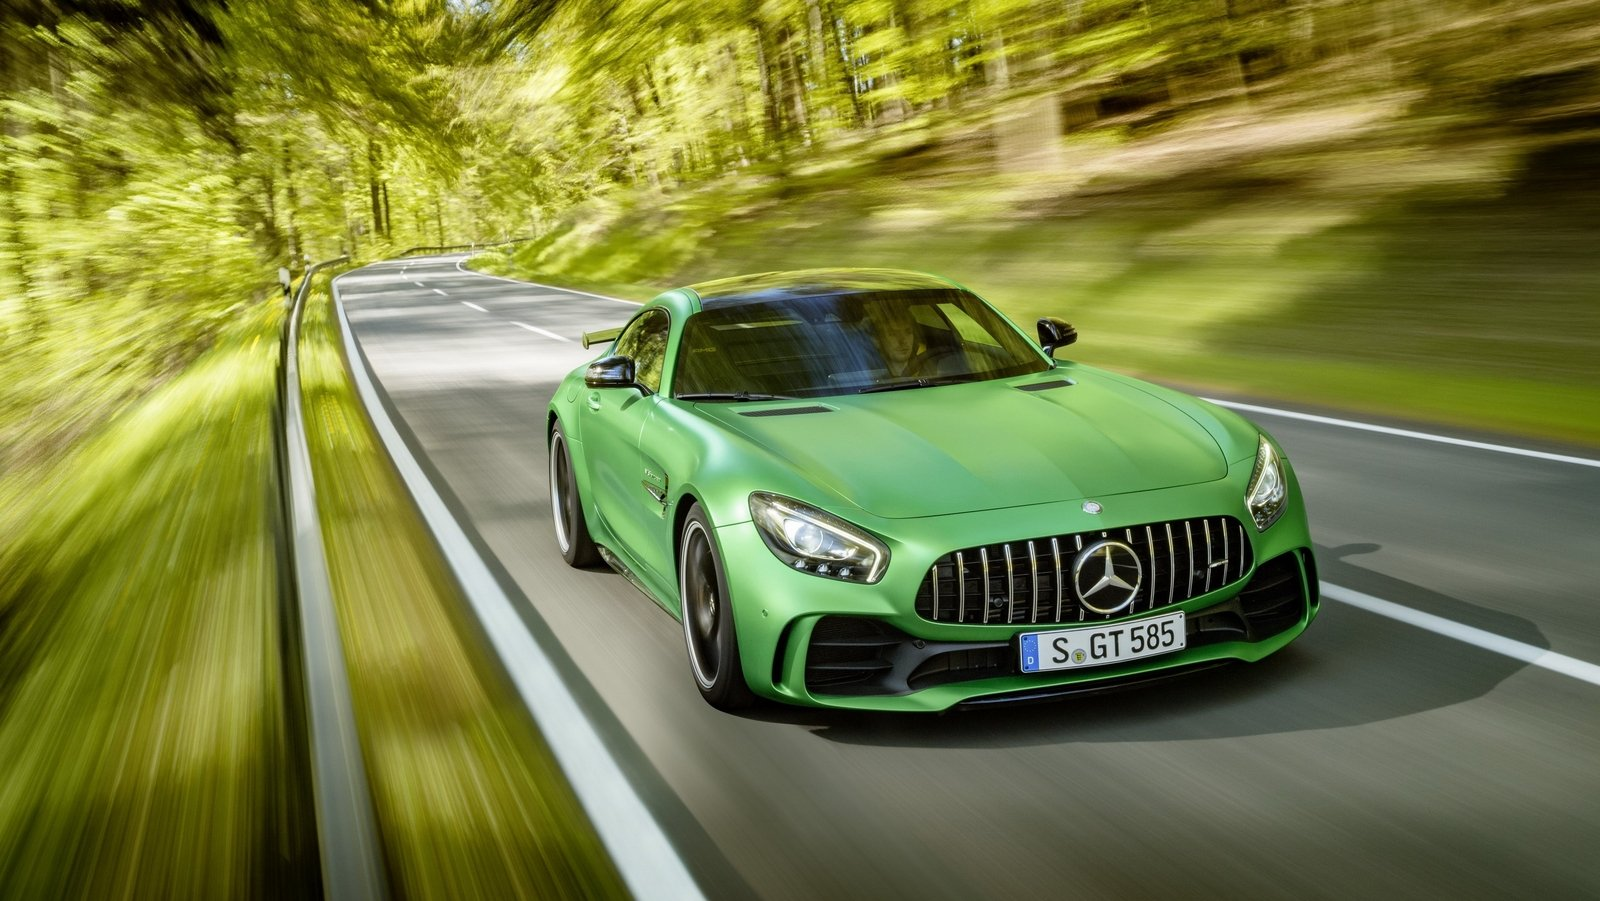 2018 Mercedes Amg Gt R Top Speed Testers Test Leads Car Auto Power Electric Circuit Tester